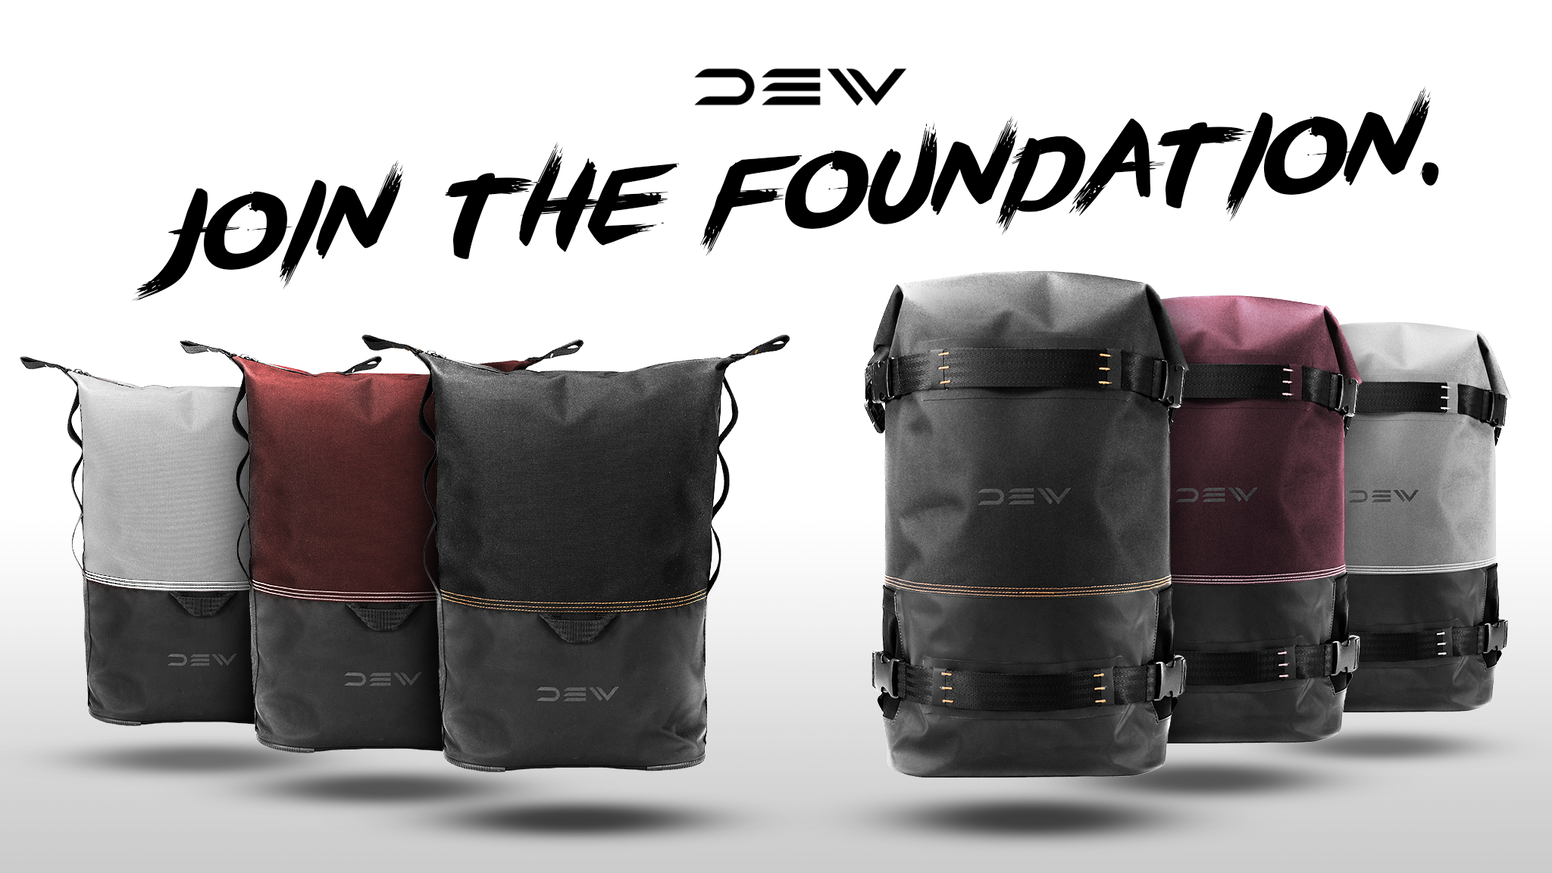 A collection of high-quality, weatherproof backpacks with urban aesthetics. One for the essentialist. One for the actionist.